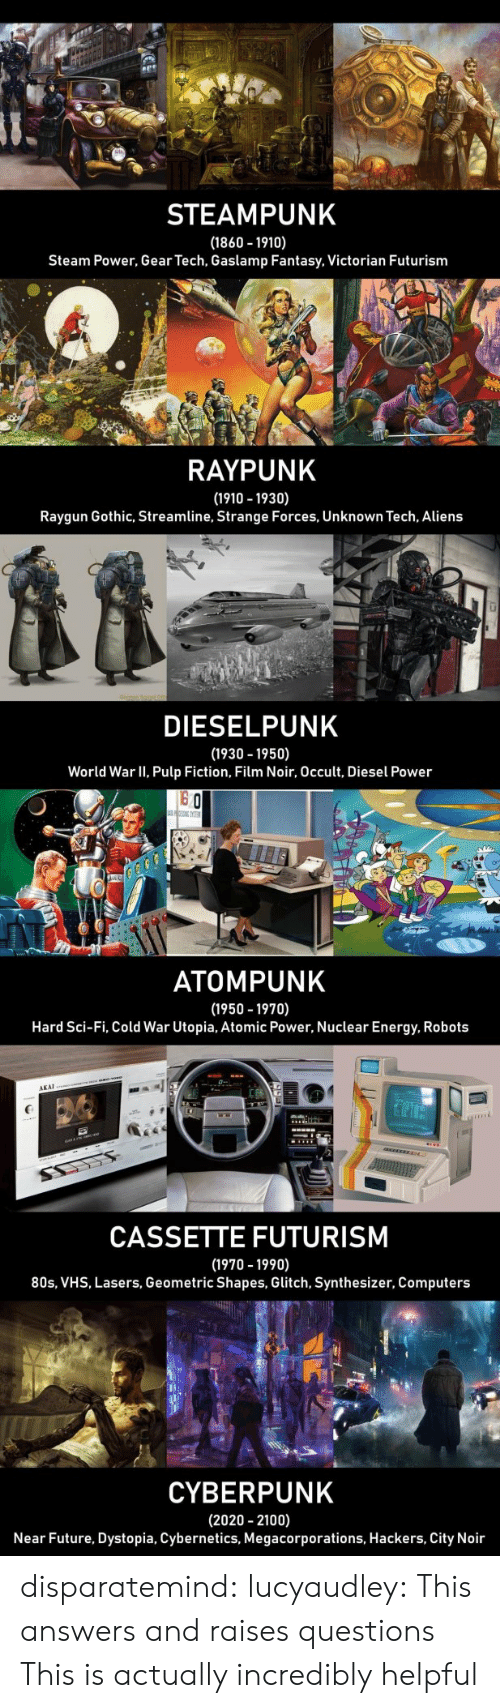 Pulp Fiction: STEAMPUNK  (1860 1910)  Steam Power, Gear Tech, Gaslamp Fantasy, Victorian Futurism  RAYPUNK  (1910 -1930)  Raygun Gothic, Streamline, Strange Forces, Unknown Tech, Aliens  LI  DIESELPUNK  (1930 -1950)  World War II, Pulp Fiction, Film Noir, Occult, Diesel Power  o Ch  ATOMPUNK  (1950 -1970)  Hard Sci-Fi, Cold War Utopia, Atomic Power, Nuclear Energy, Robots  AKAI  CASSETTE FUTURISM  (1970 -1990)  80s, VHS, Lasers, Geometric Shapes, Glitch, Synthesizer, Computers  CYBERPUNK  (2020 2100)  Near Future, Dystopia, Cybernetics, Megacorporations, Hackers, City Noir disparatemind: lucyaudley: This answers and raises questions   This is actually incredibly helpful